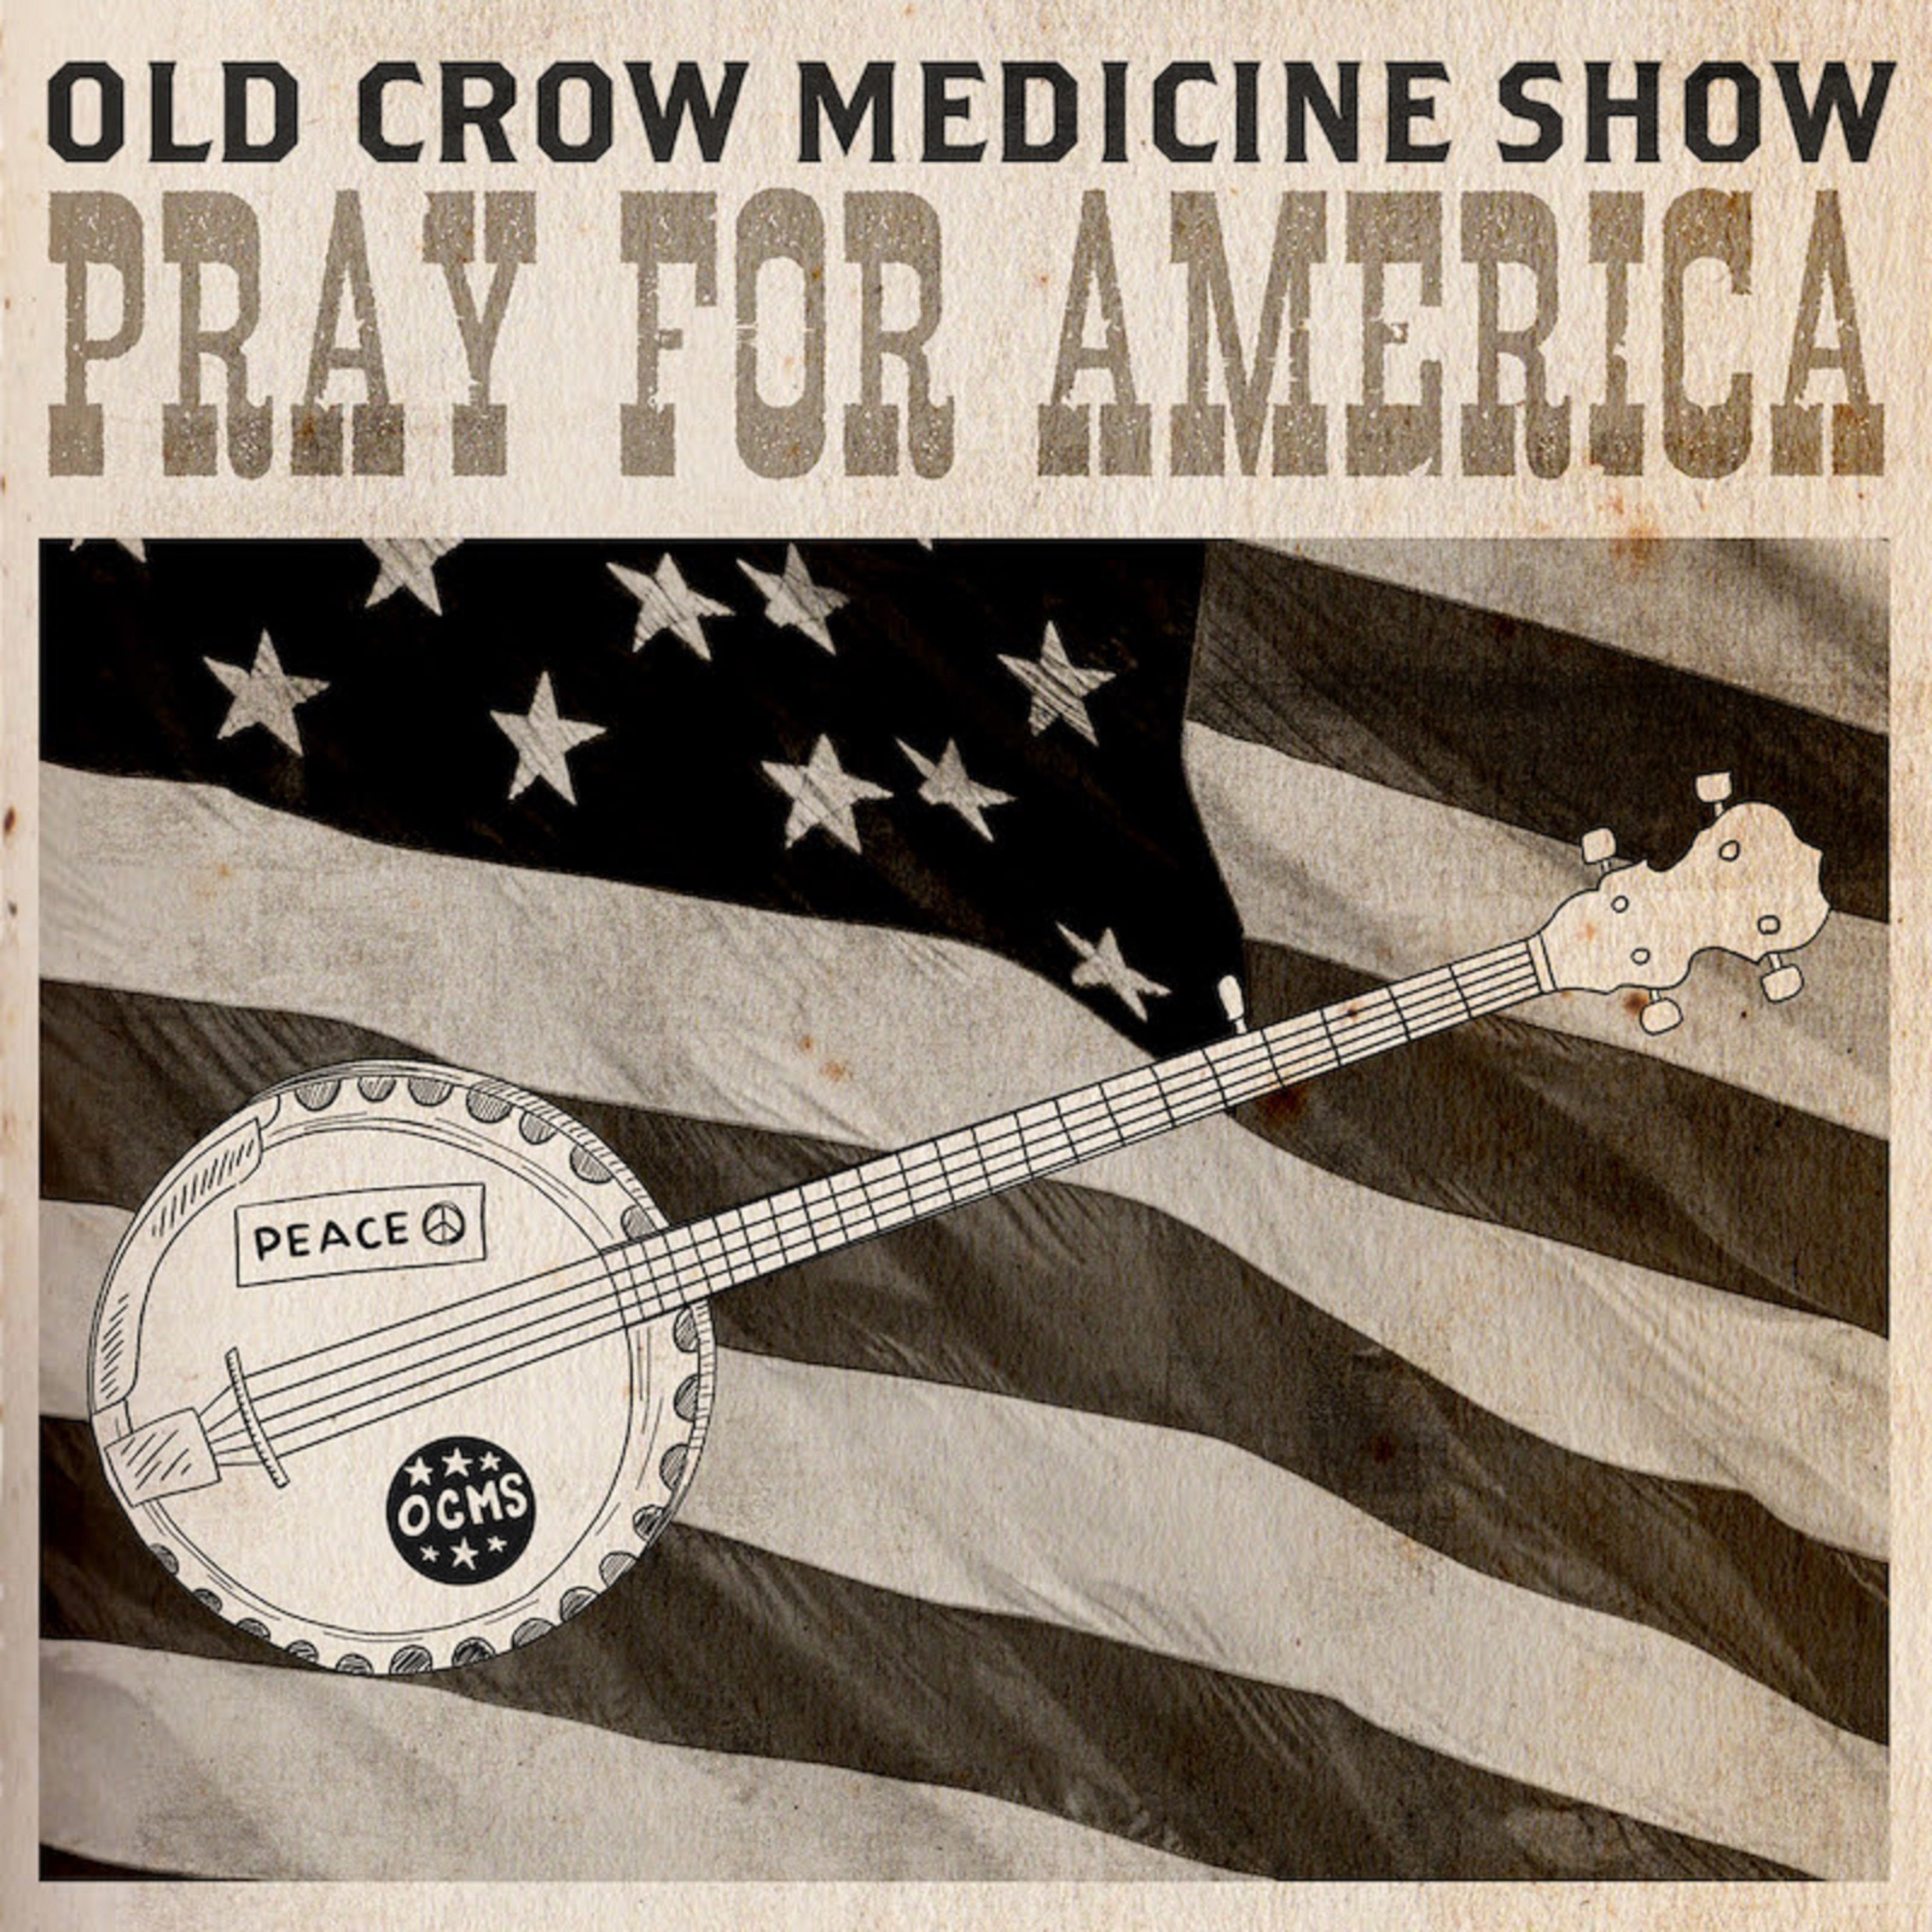 Old Crow Medicine Show Releases A New Song For Troubled Times